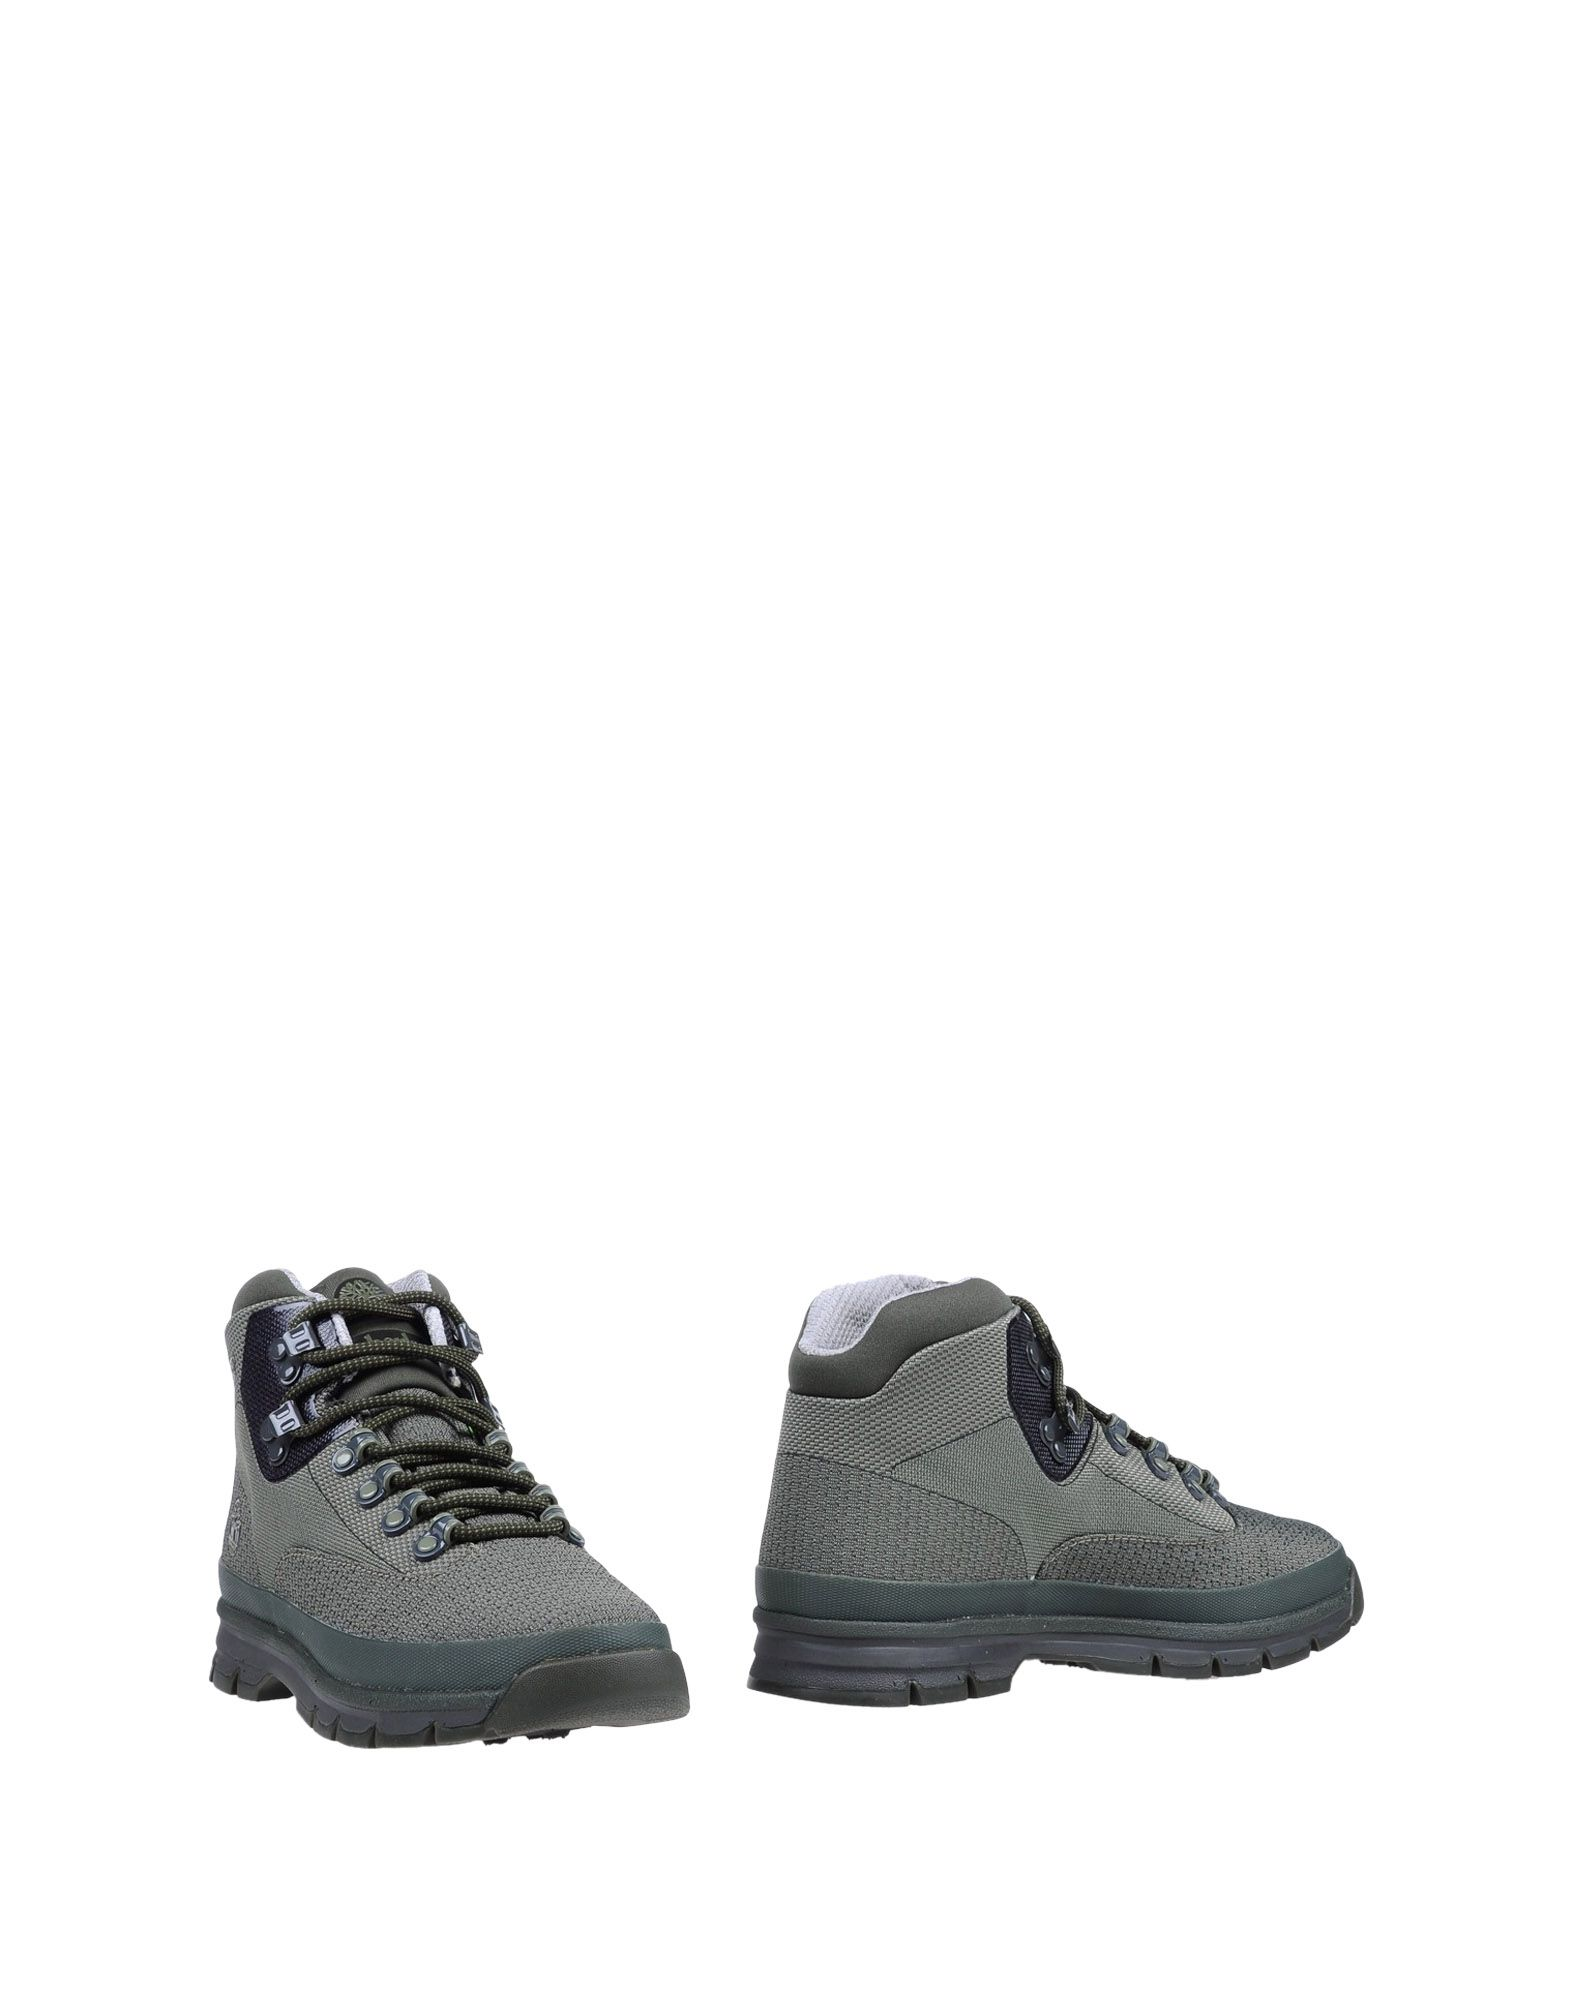 Bottine Timberland Homme - Bottines Timberland sur